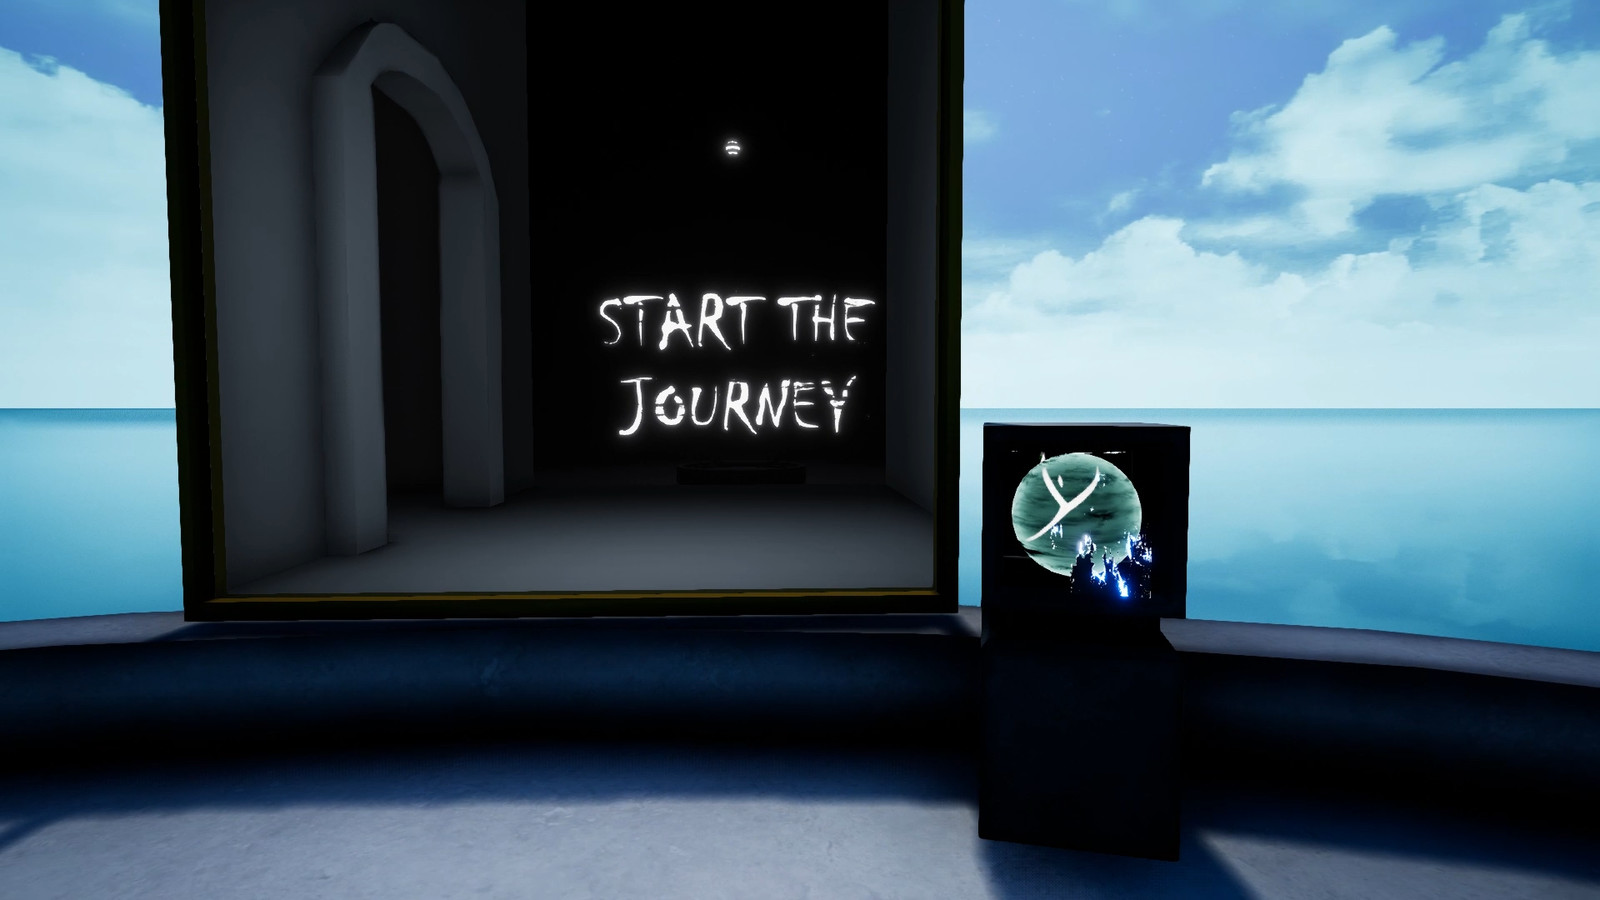 The game is about resolving puzzles using physical objects